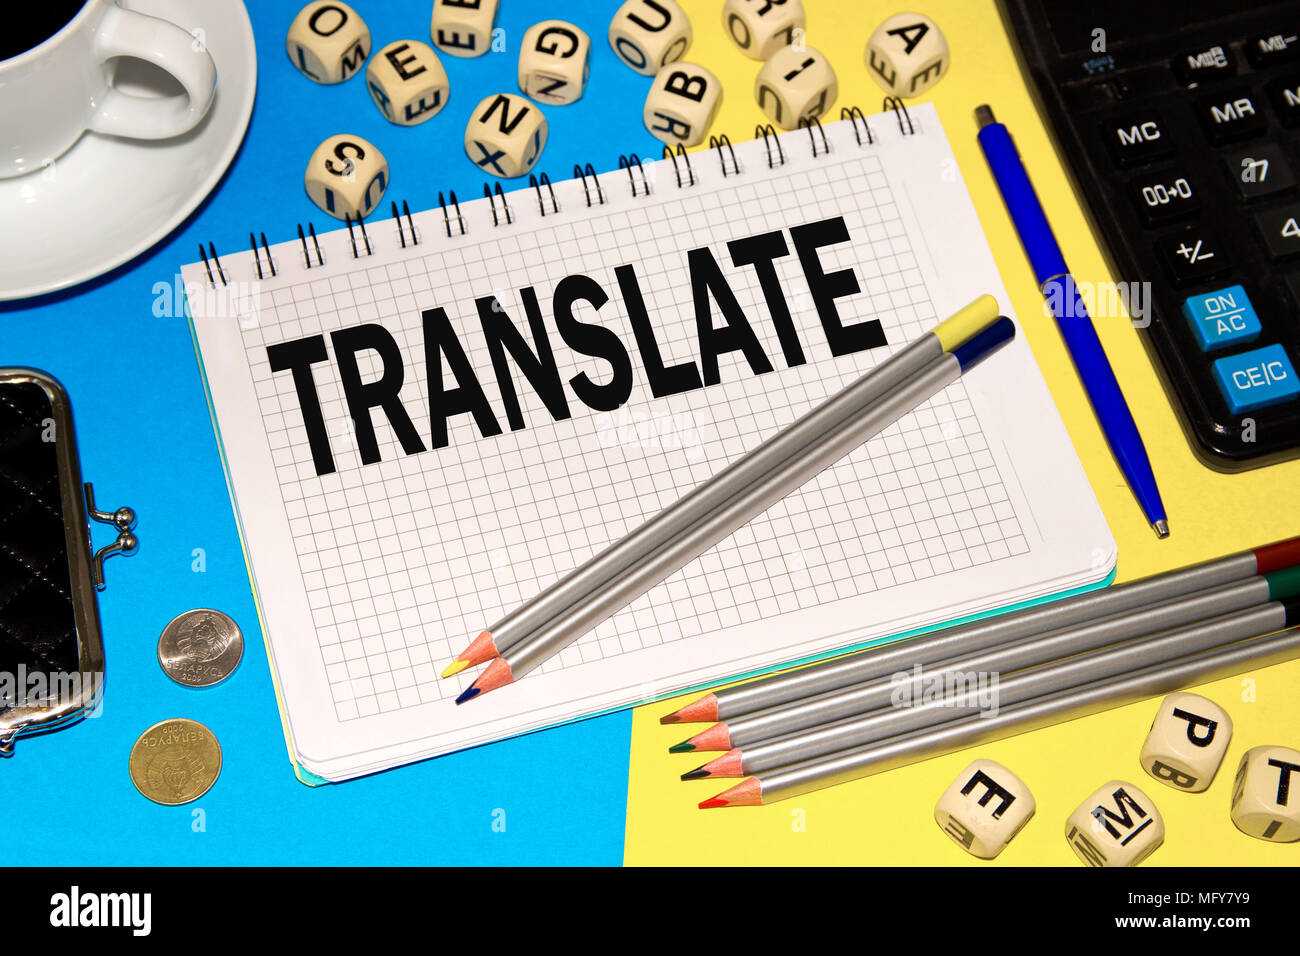 Notebook with Notes TRANSLATE with office tools and dice with letters . Concept TRANSLATE - Stock Image